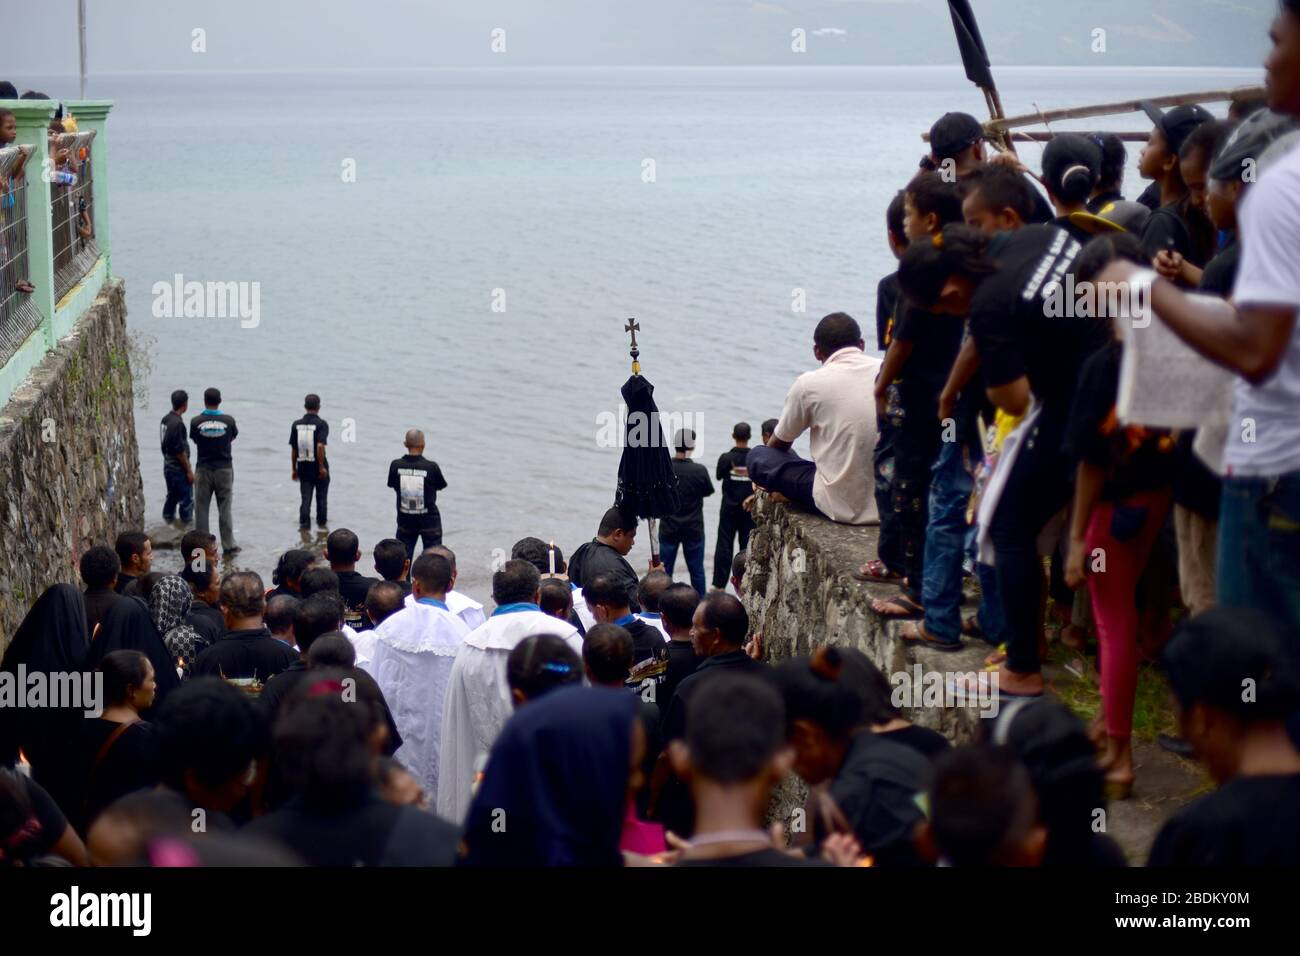 Crowds during Semana Santa (Holy Week) procession in Larantuka, Flores Island, Indonesia. Photo: Reynold Sumayku Stock Photo